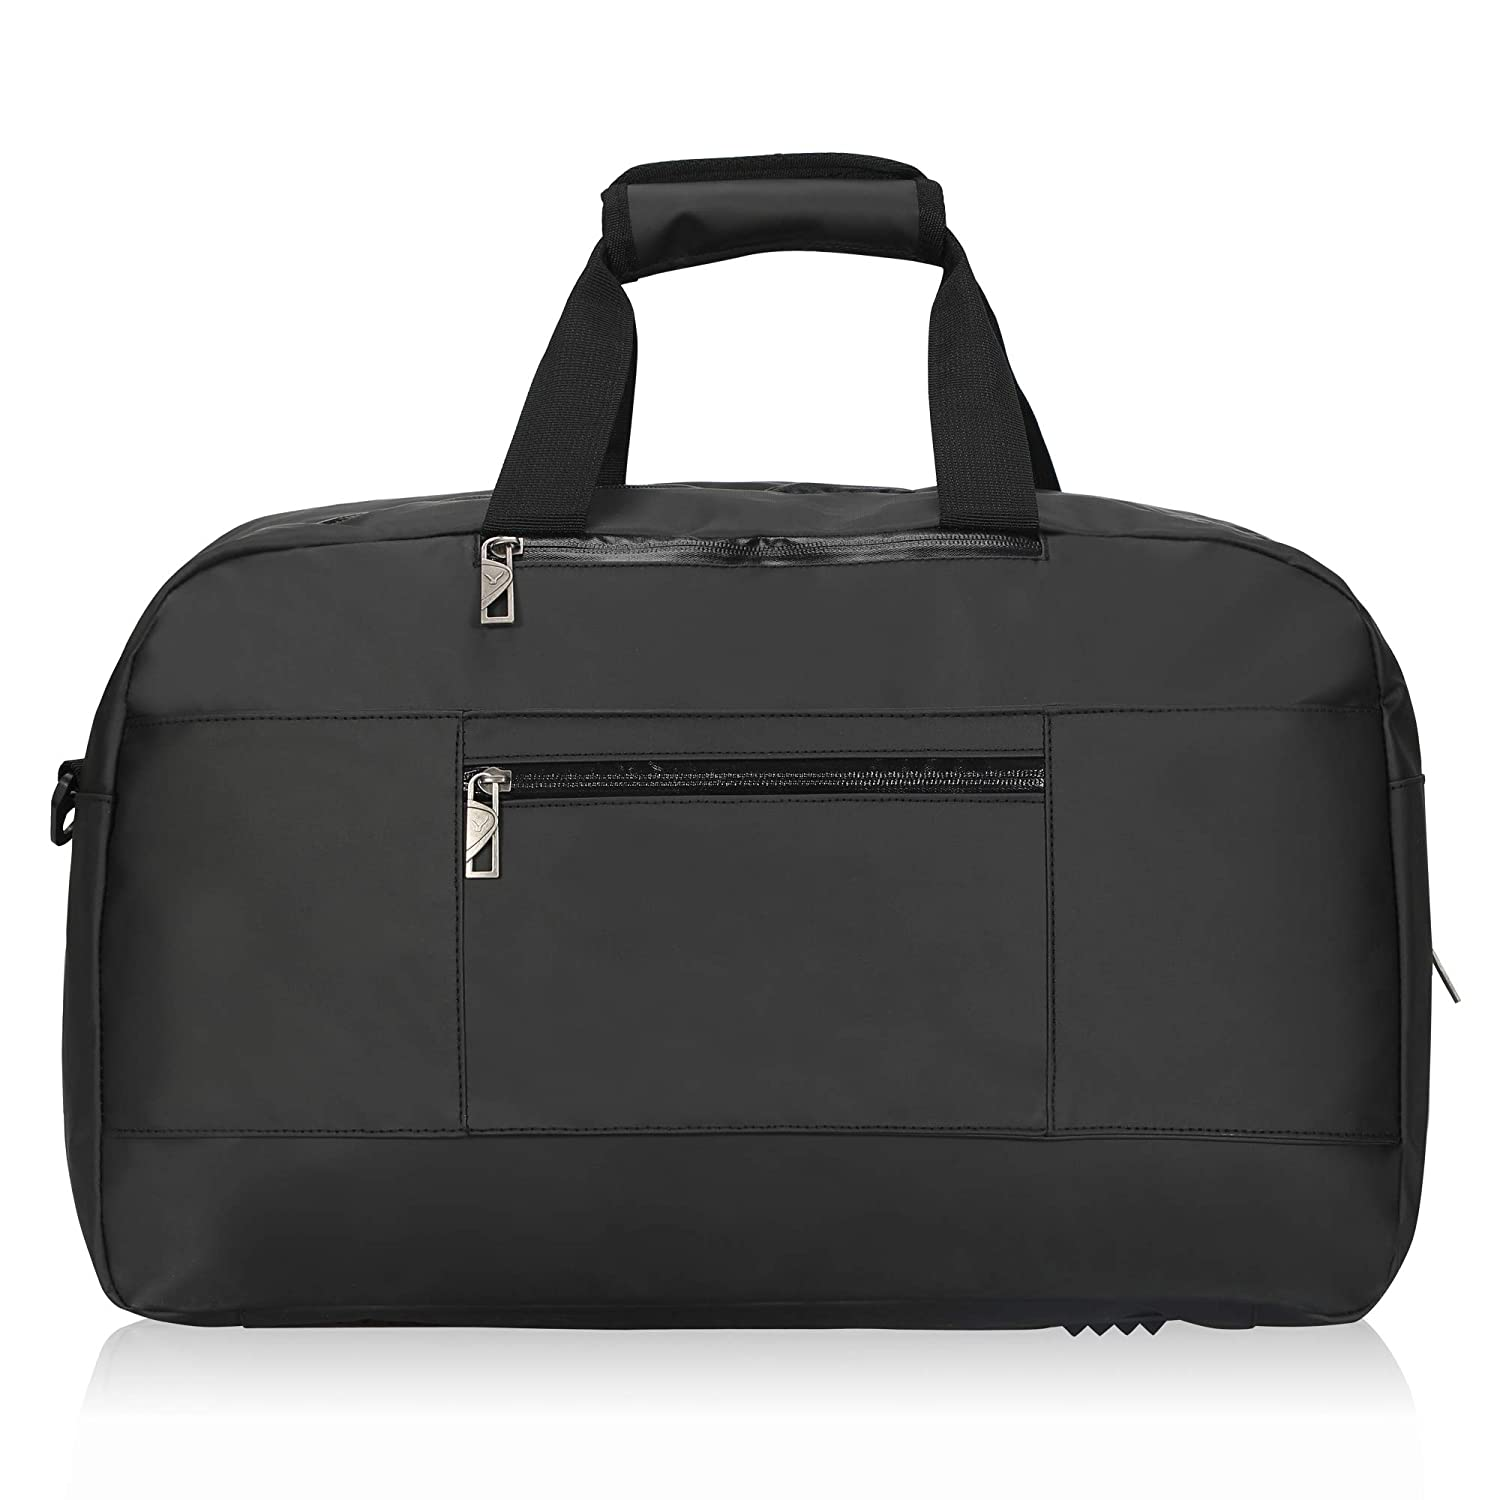 c7aed2860 Hynes Eagle Waterproof Weekend Travel Duffel Bag Flight Approved Carry On  Luggage Tote 36 litres Black: Amazon.co.uk: Luggage